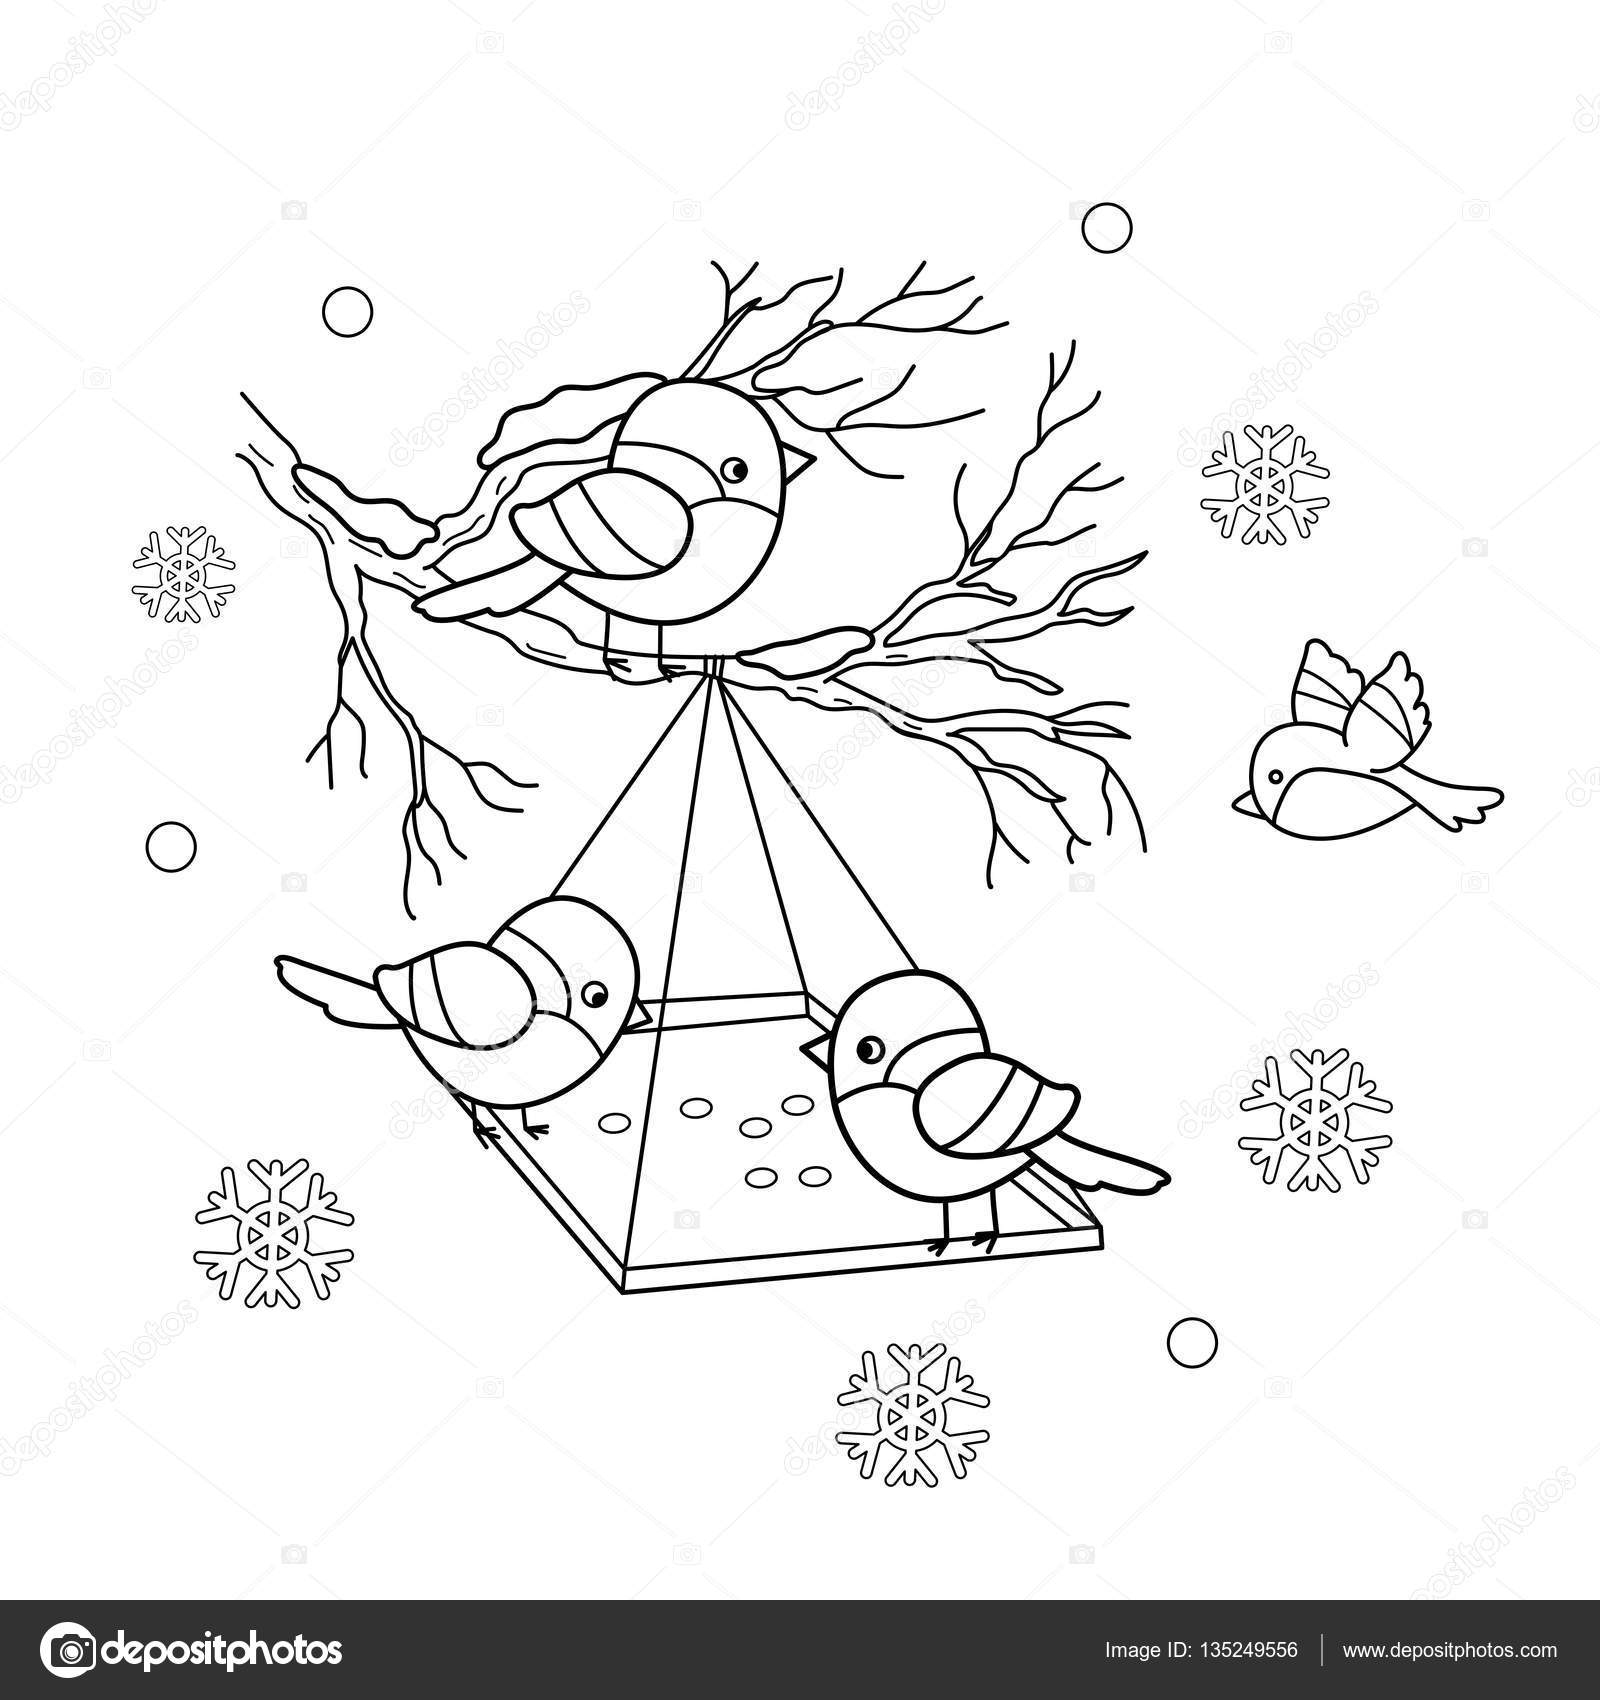 Coloring Page Outline Of Cartoon Birds In The Winter Bird Feeder Bullfinch Titmouse Sparrows Book For Kids Vector By Oleon17